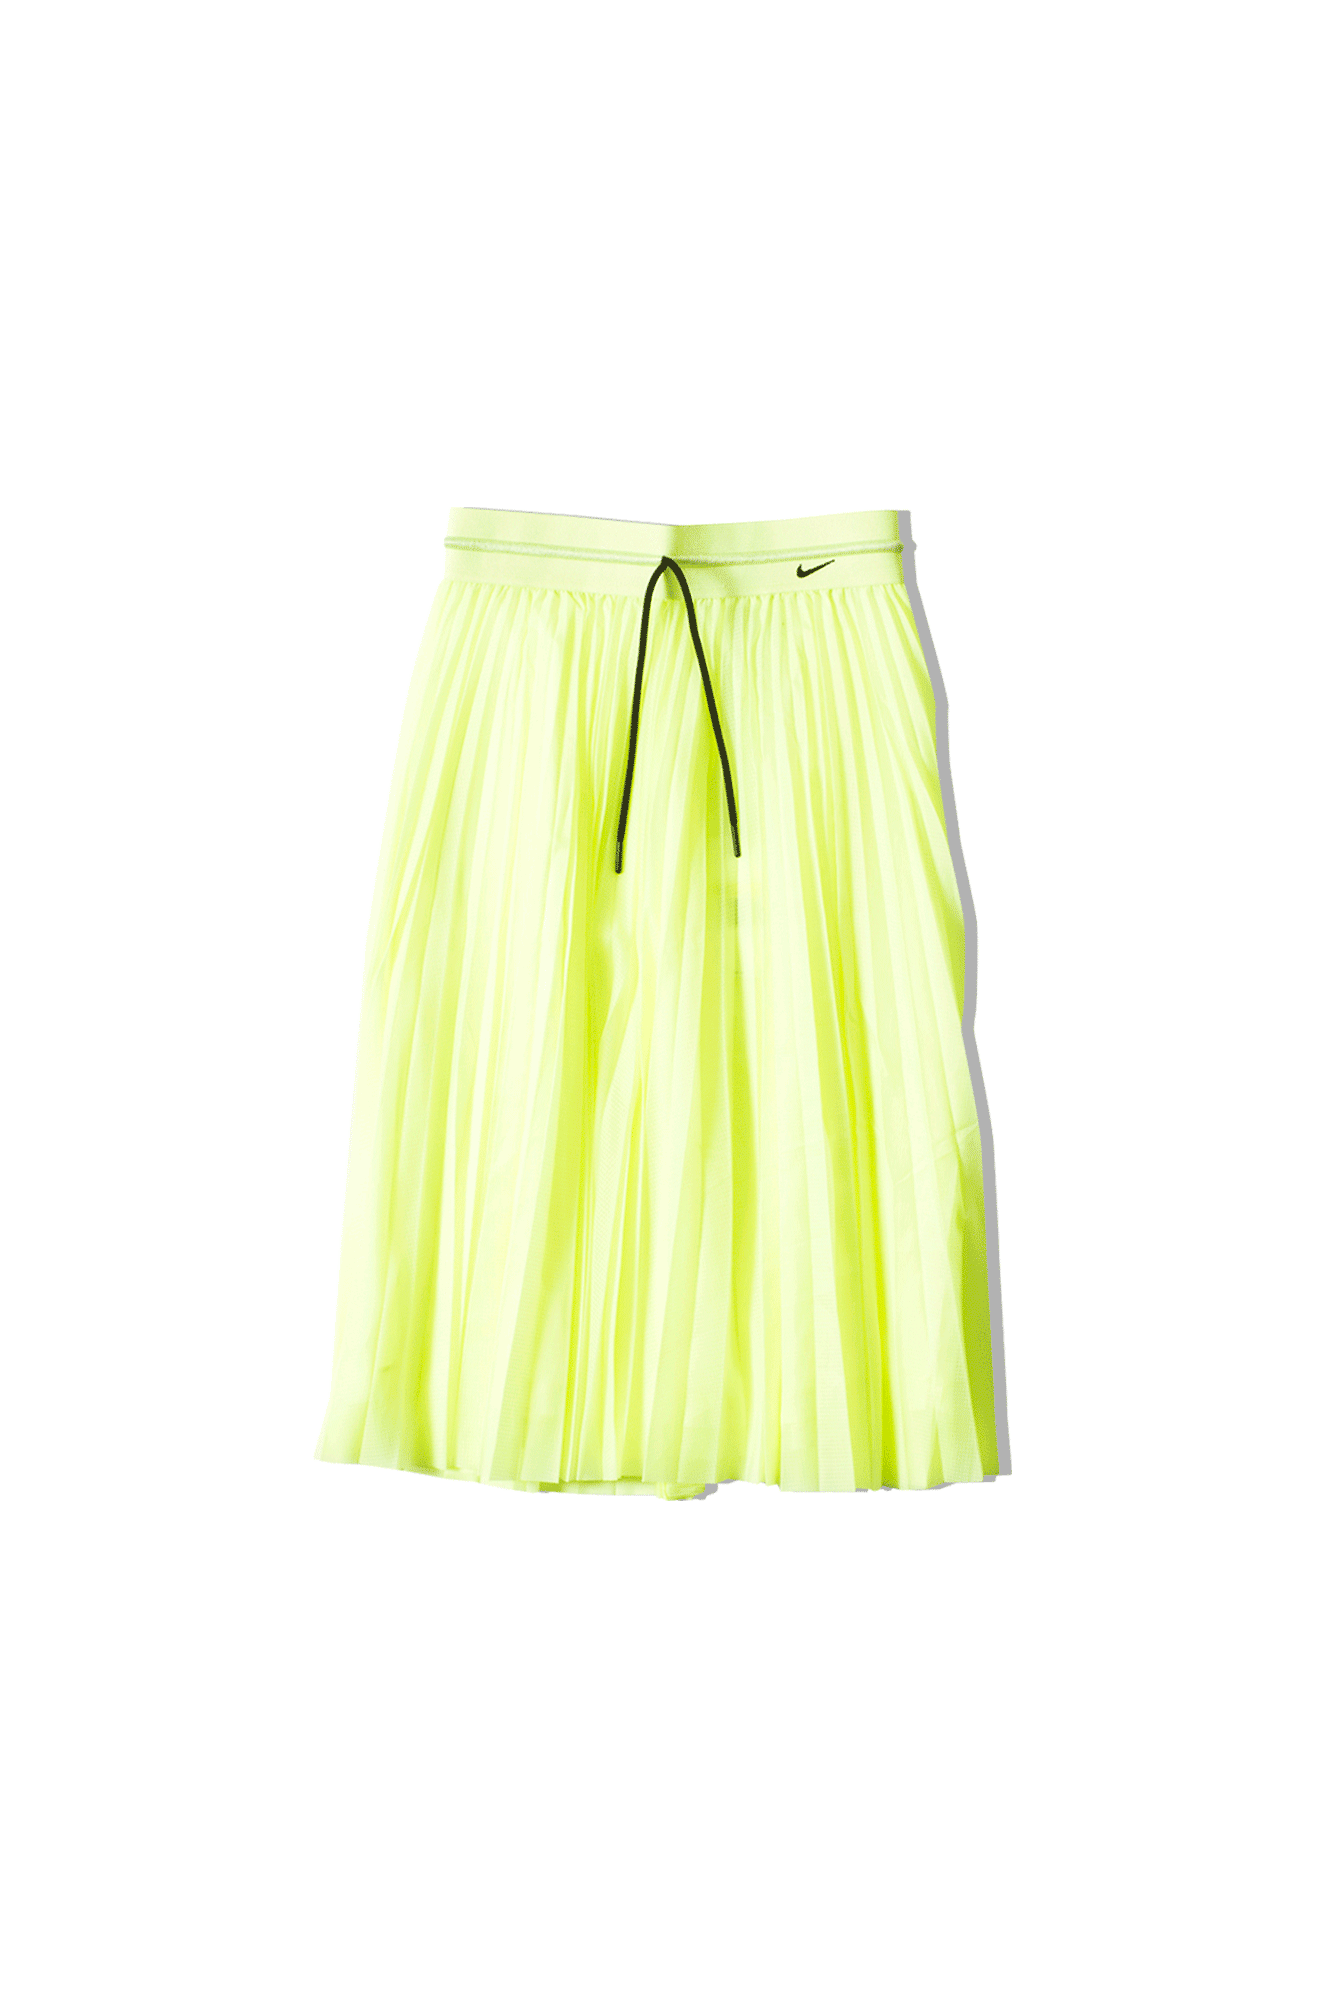 Nike Gonne W Nrg Skirt Giallo [option2] - One Block Down